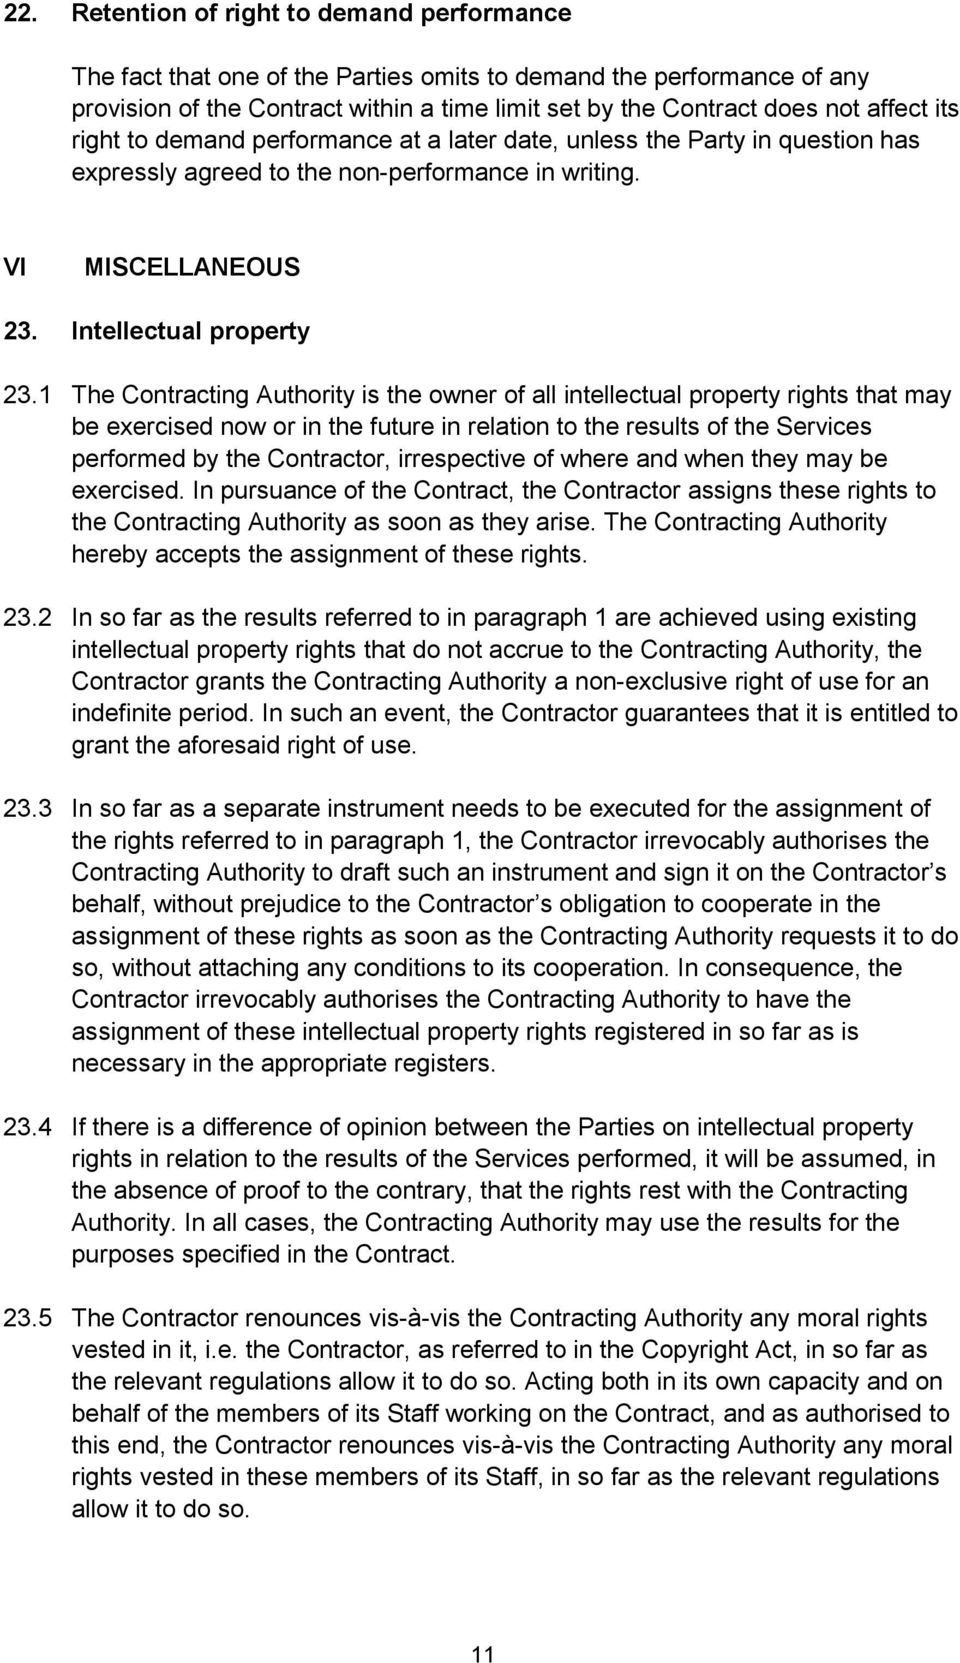 1 The Contracting Authority is the owner of all intellectual property rights that may be exercised now or in the future in relation to the results of the Services performed by the Contractor,